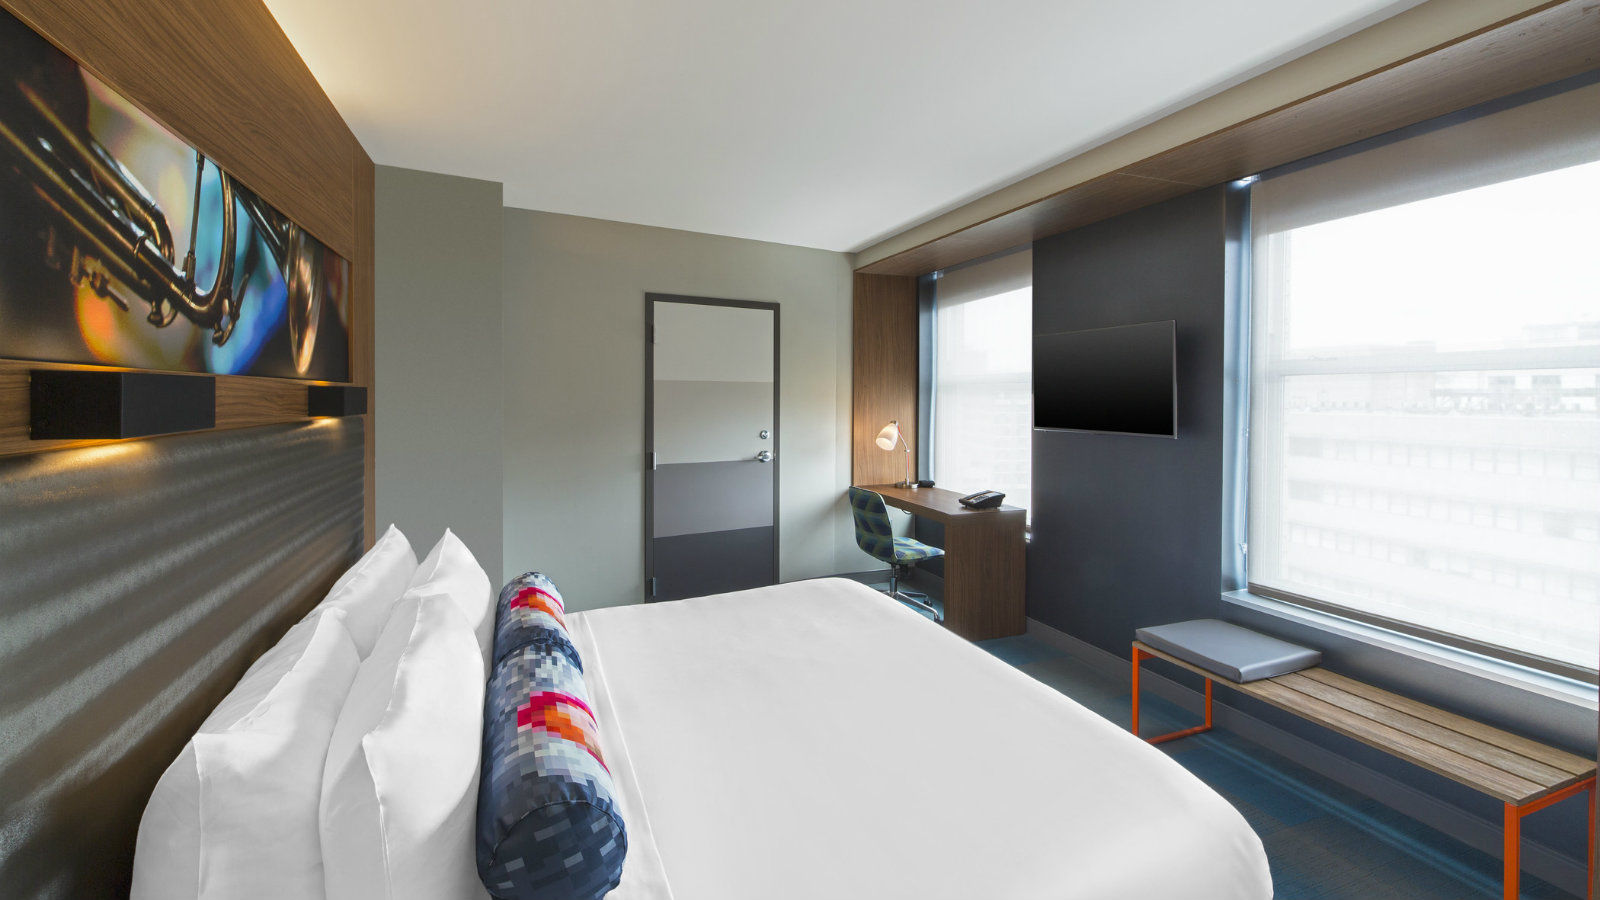 New Orleans Accommodations - Aloft Room